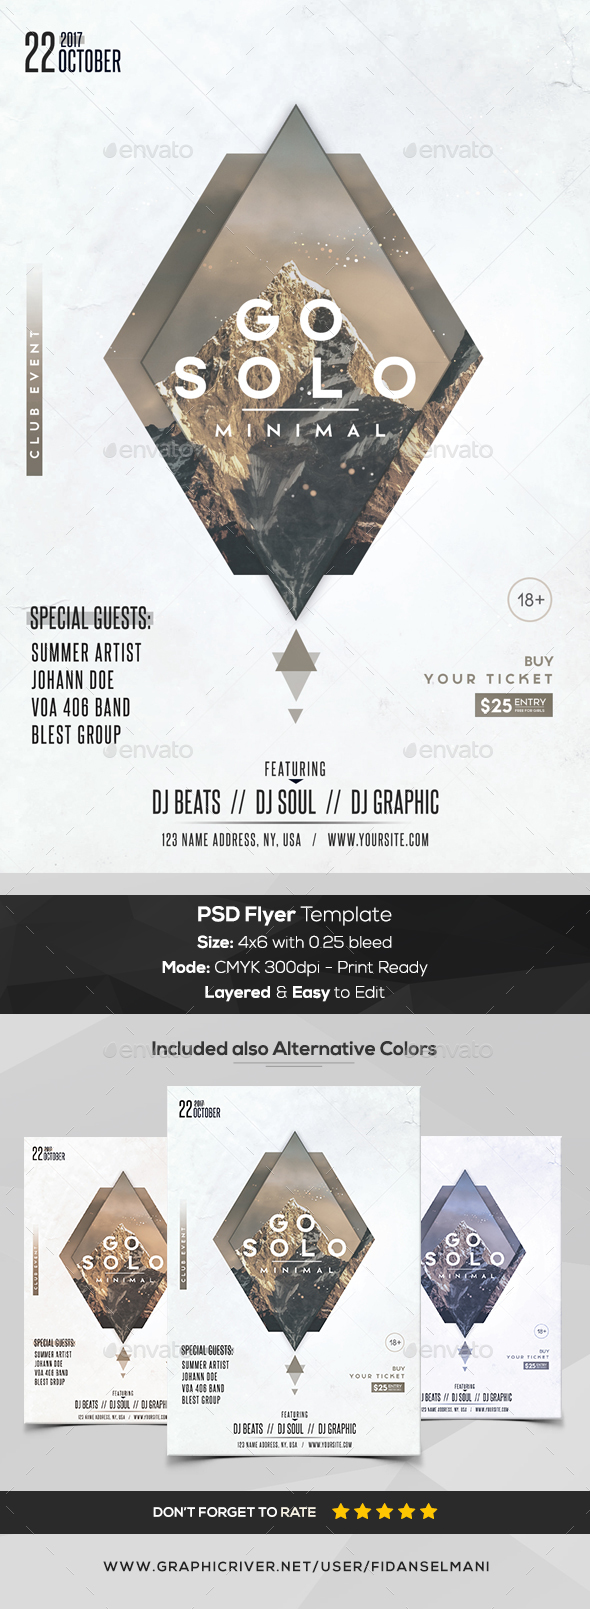 Go Solo - Minimal PSD Flyer Template - Flyers Print Templates